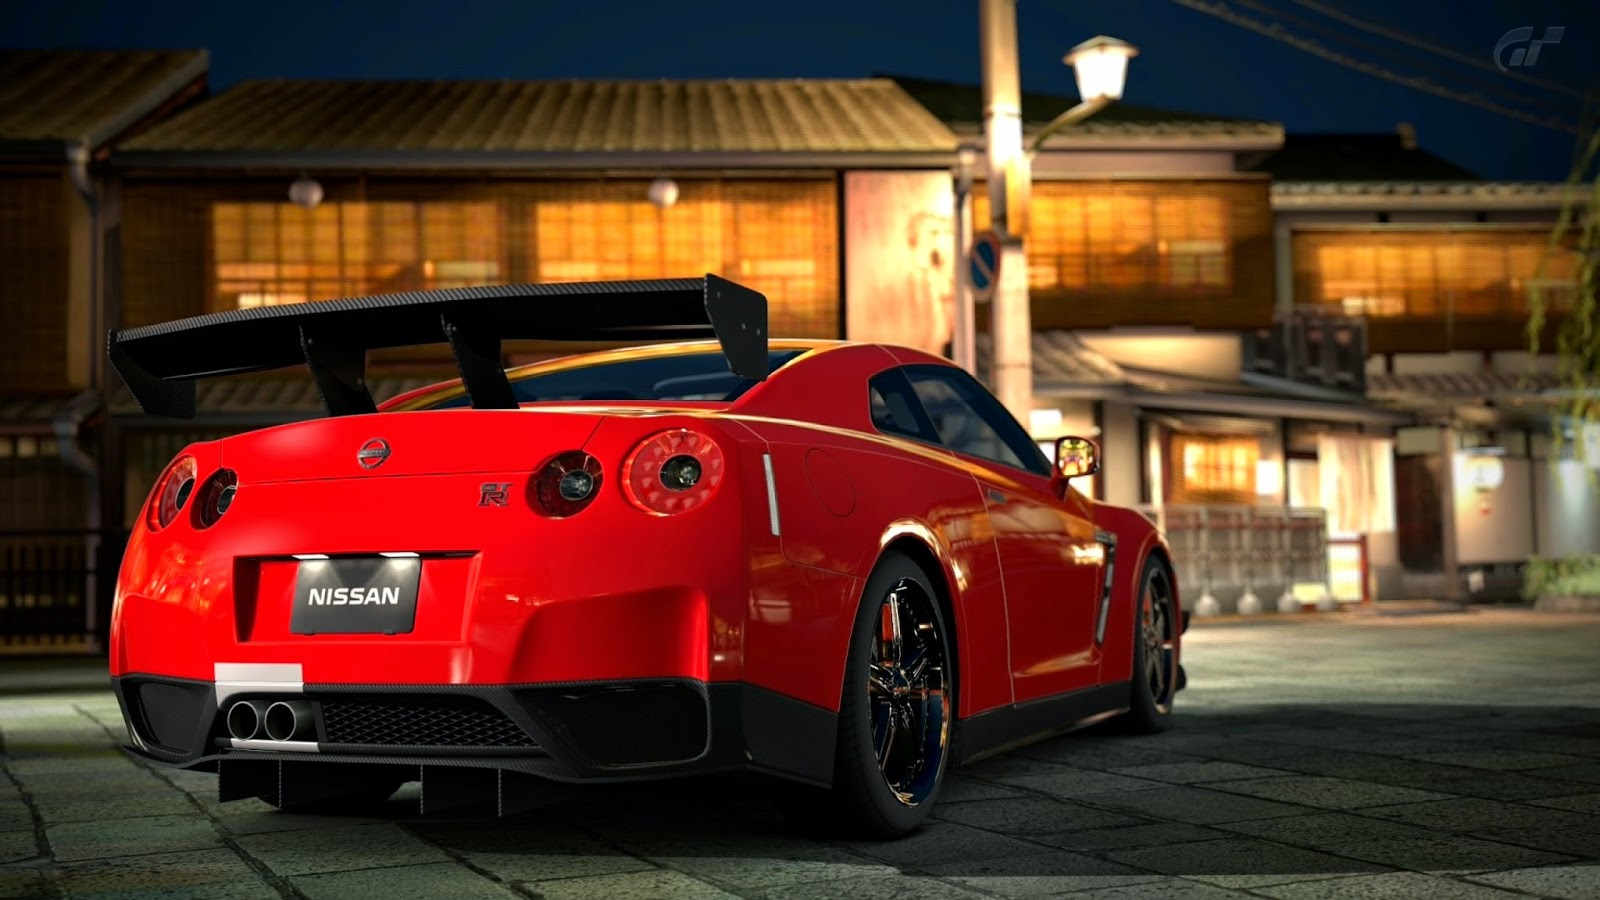 Nissan GTR - wallpaper hd | HD Wallpaper with cars ...